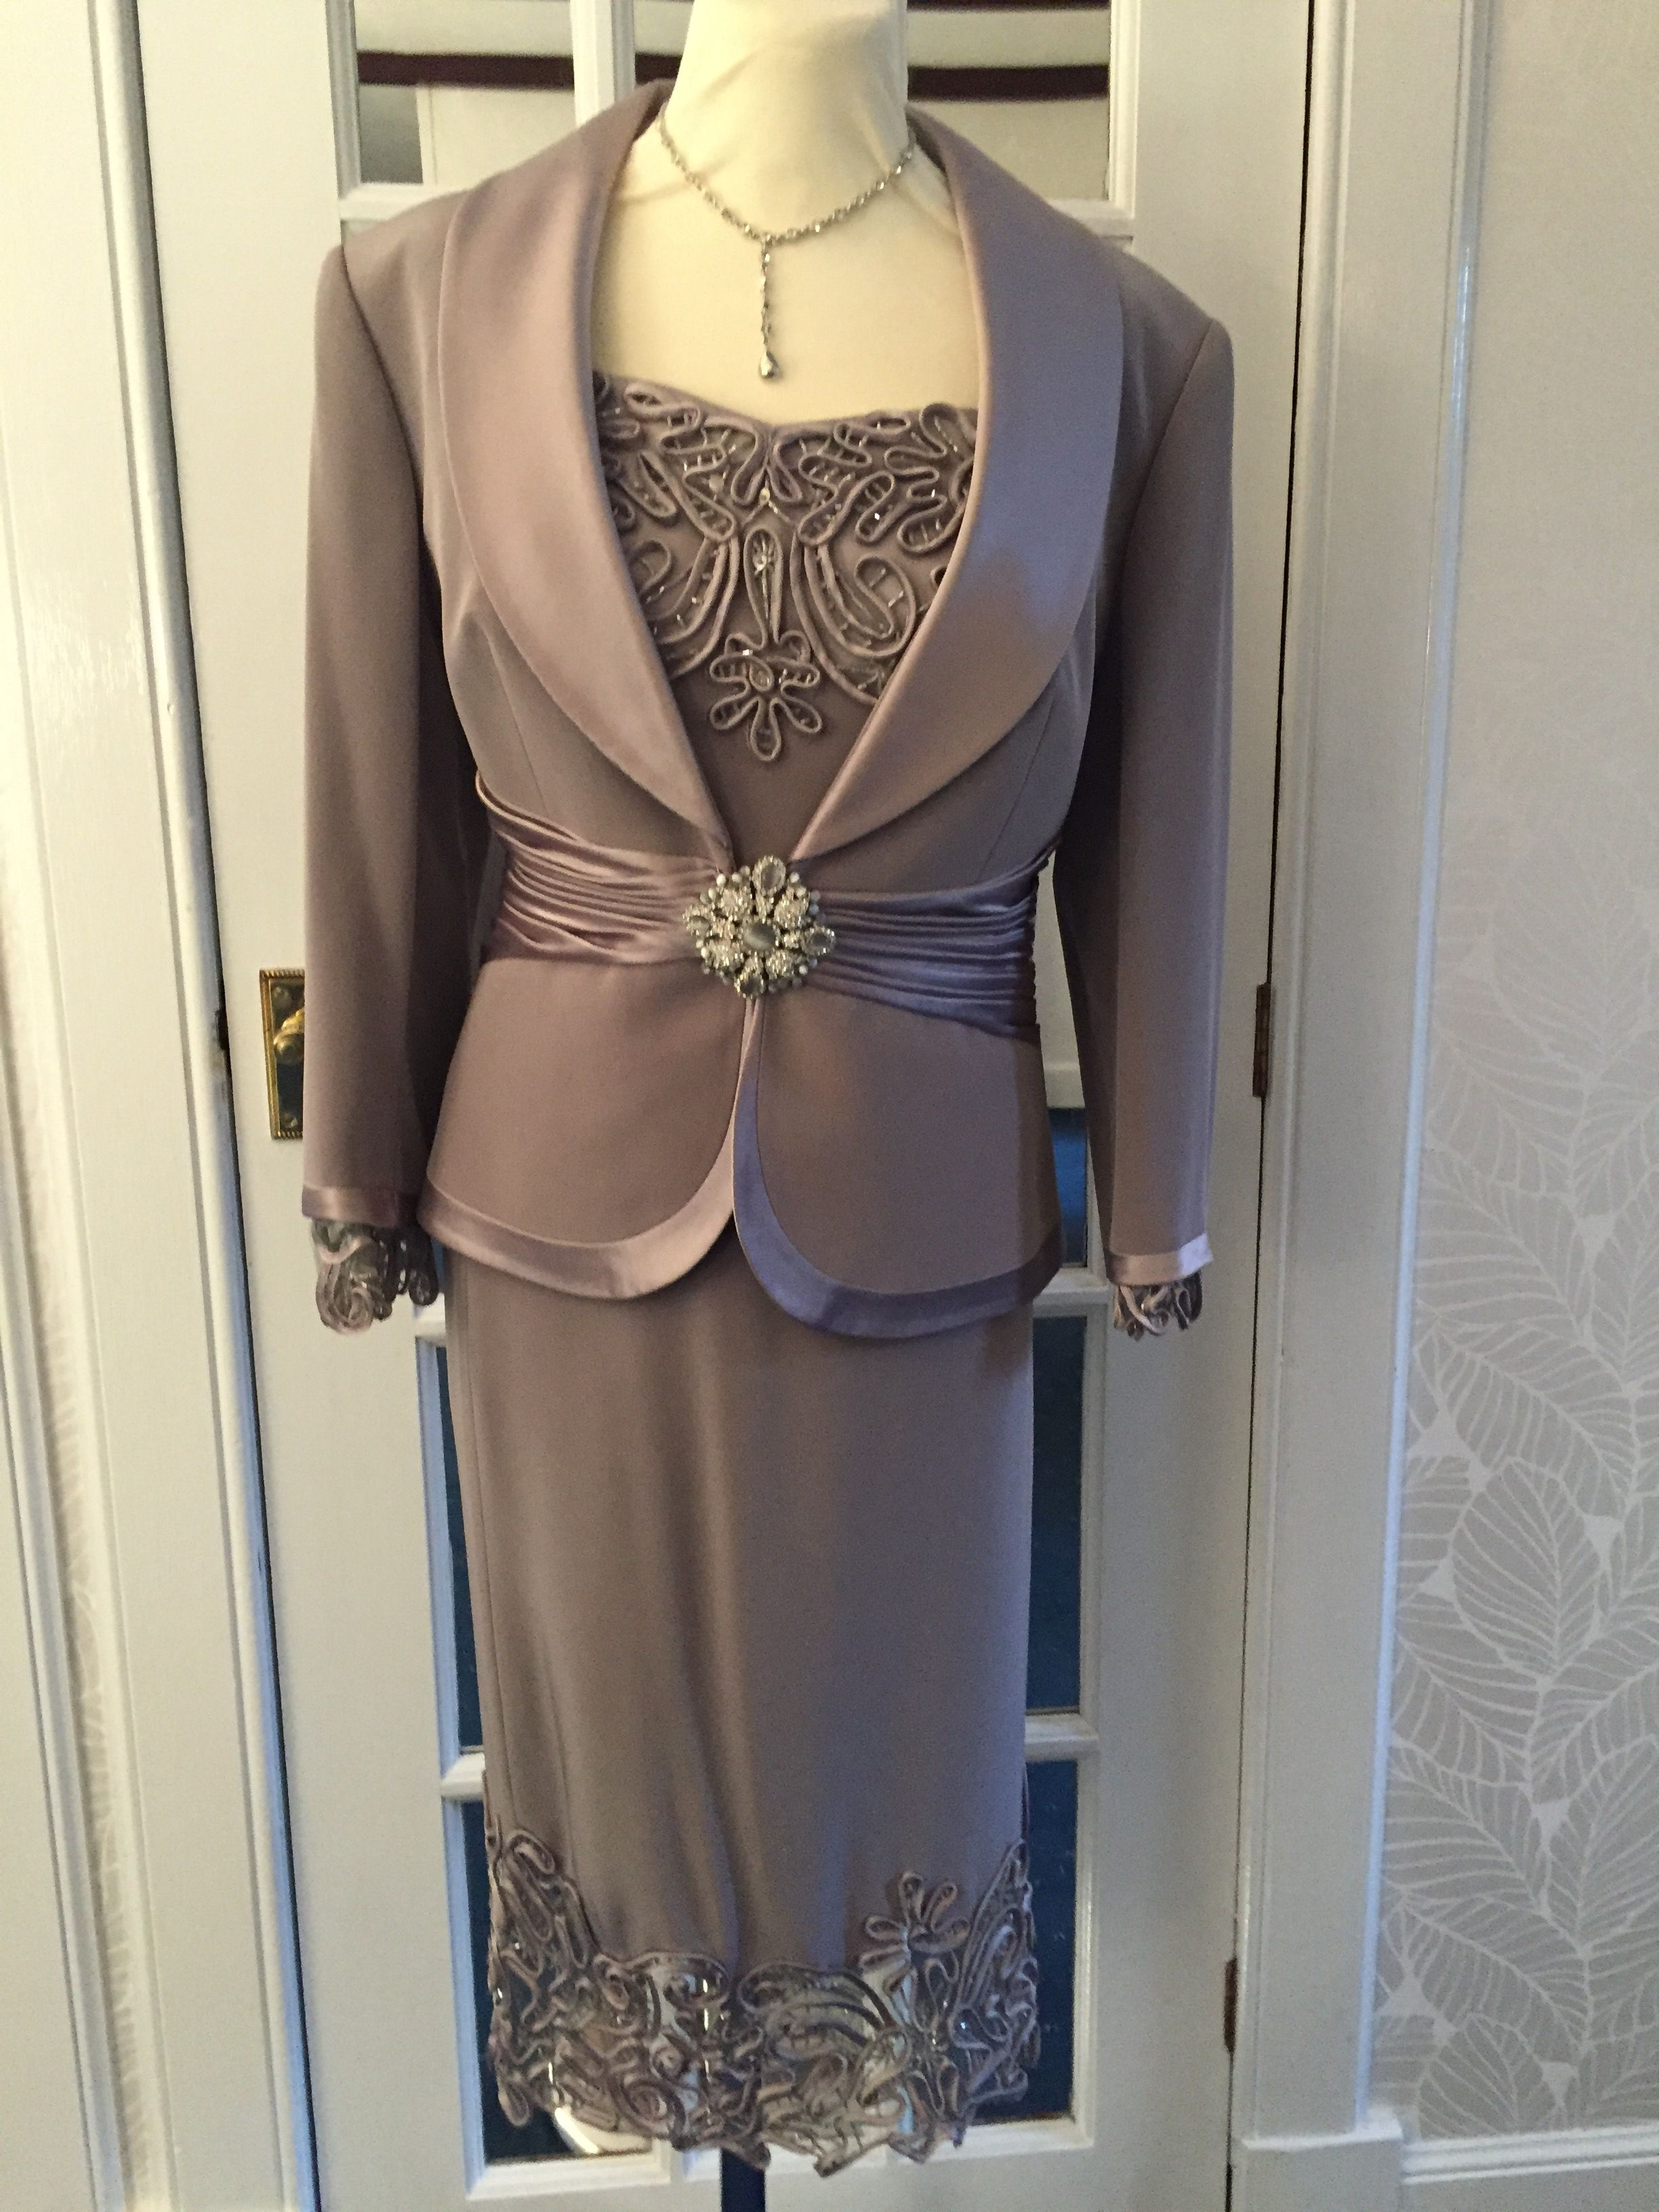 Mink coloured 3 piece suit ideal for mother of the bride or groom. Beautiful intricate detailing on the cuffs of the jacket and the hem of the skirt